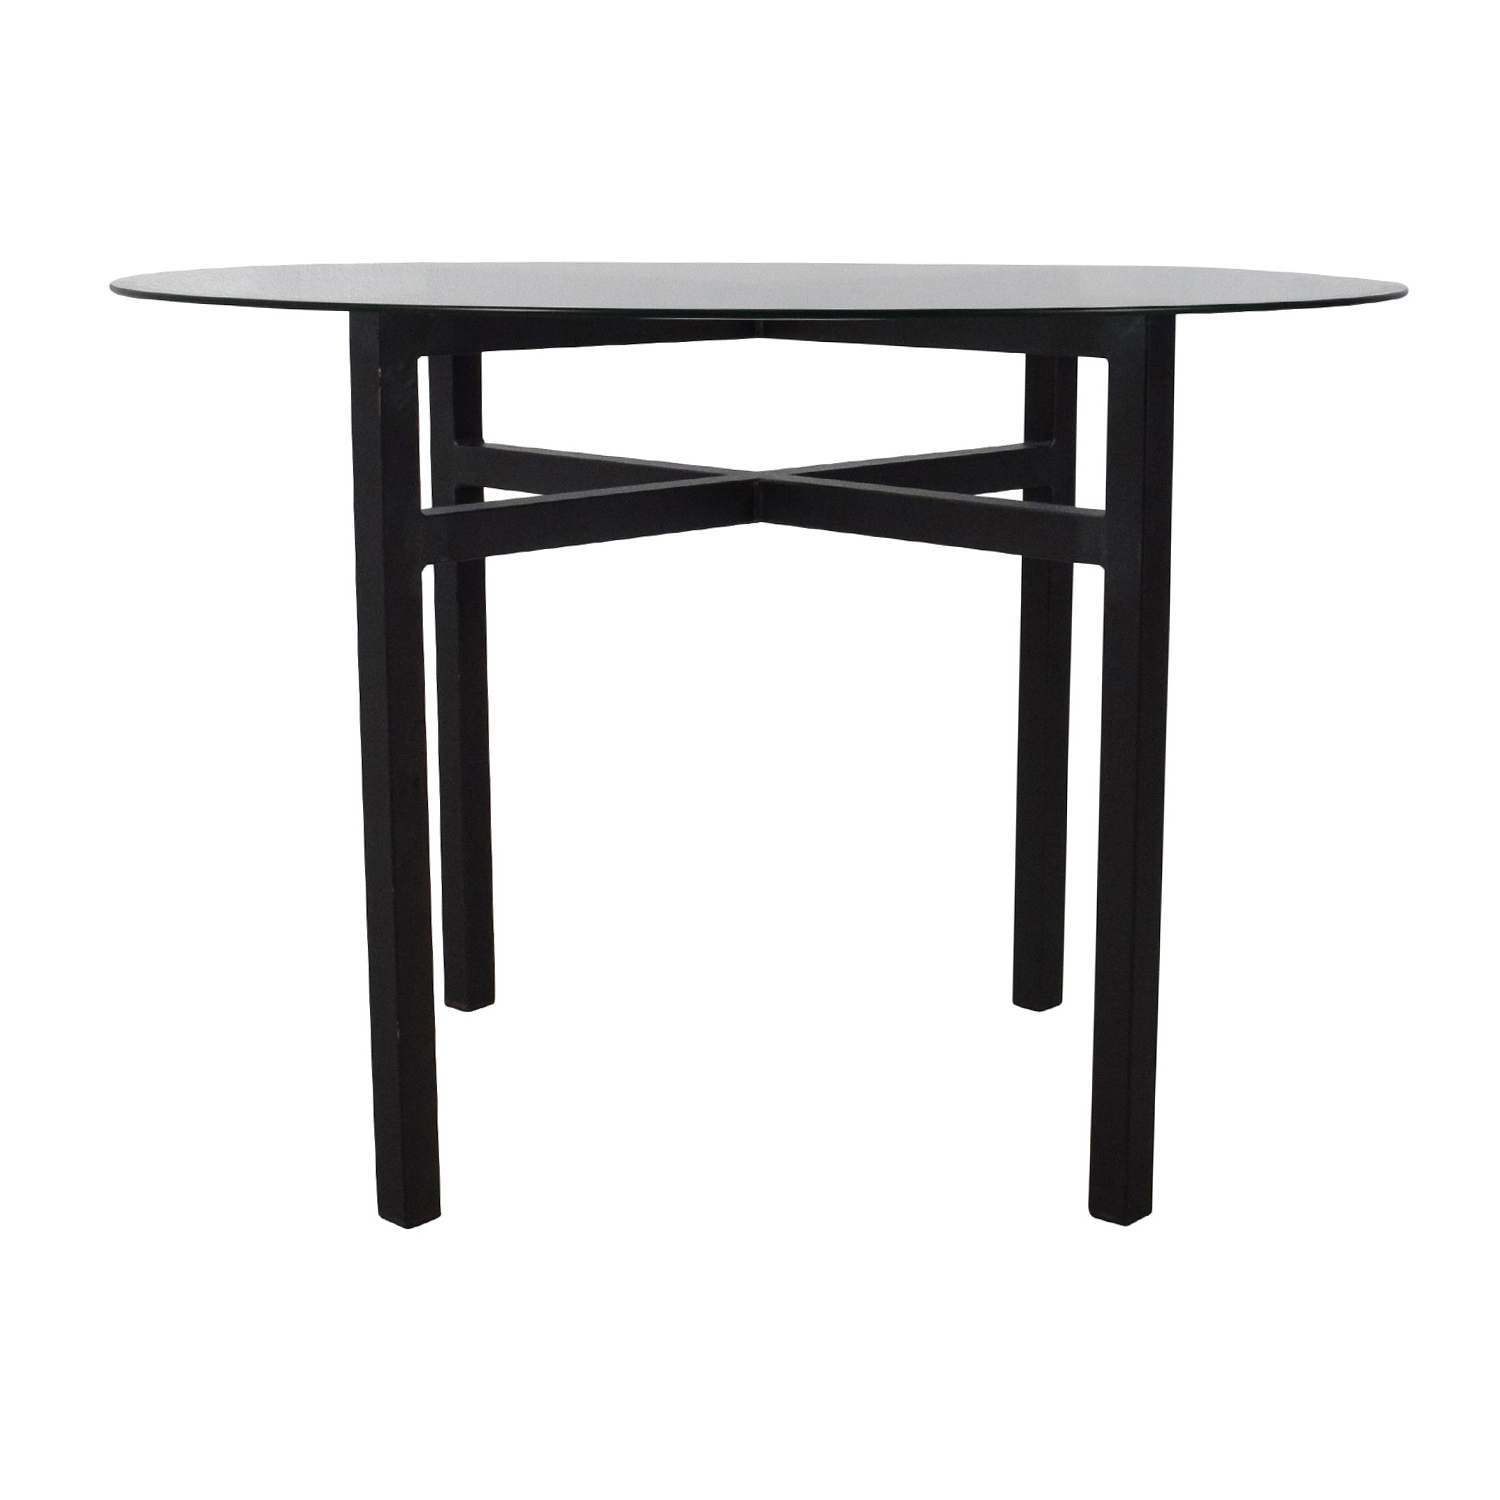 [%69% Off – Room And Board Room & Board Benson Glass Top Dining Table Within Newest Benson Rectangle Dining Tables|Benson Rectangle Dining Tables For Well Known 69% Off – Room And Board Room & Board Benson Glass Top Dining Table|Most Up To Date Benson Rectangle Dining Tables With 69% Off – Room And Board Room & Board Benson Glass Top Dining Table|Most Recent 69% Off – Room And Board Room & Board Benson Glass Top Dining Table Inside Benson Rectangle Dining Tables%] (View 12 of 25)